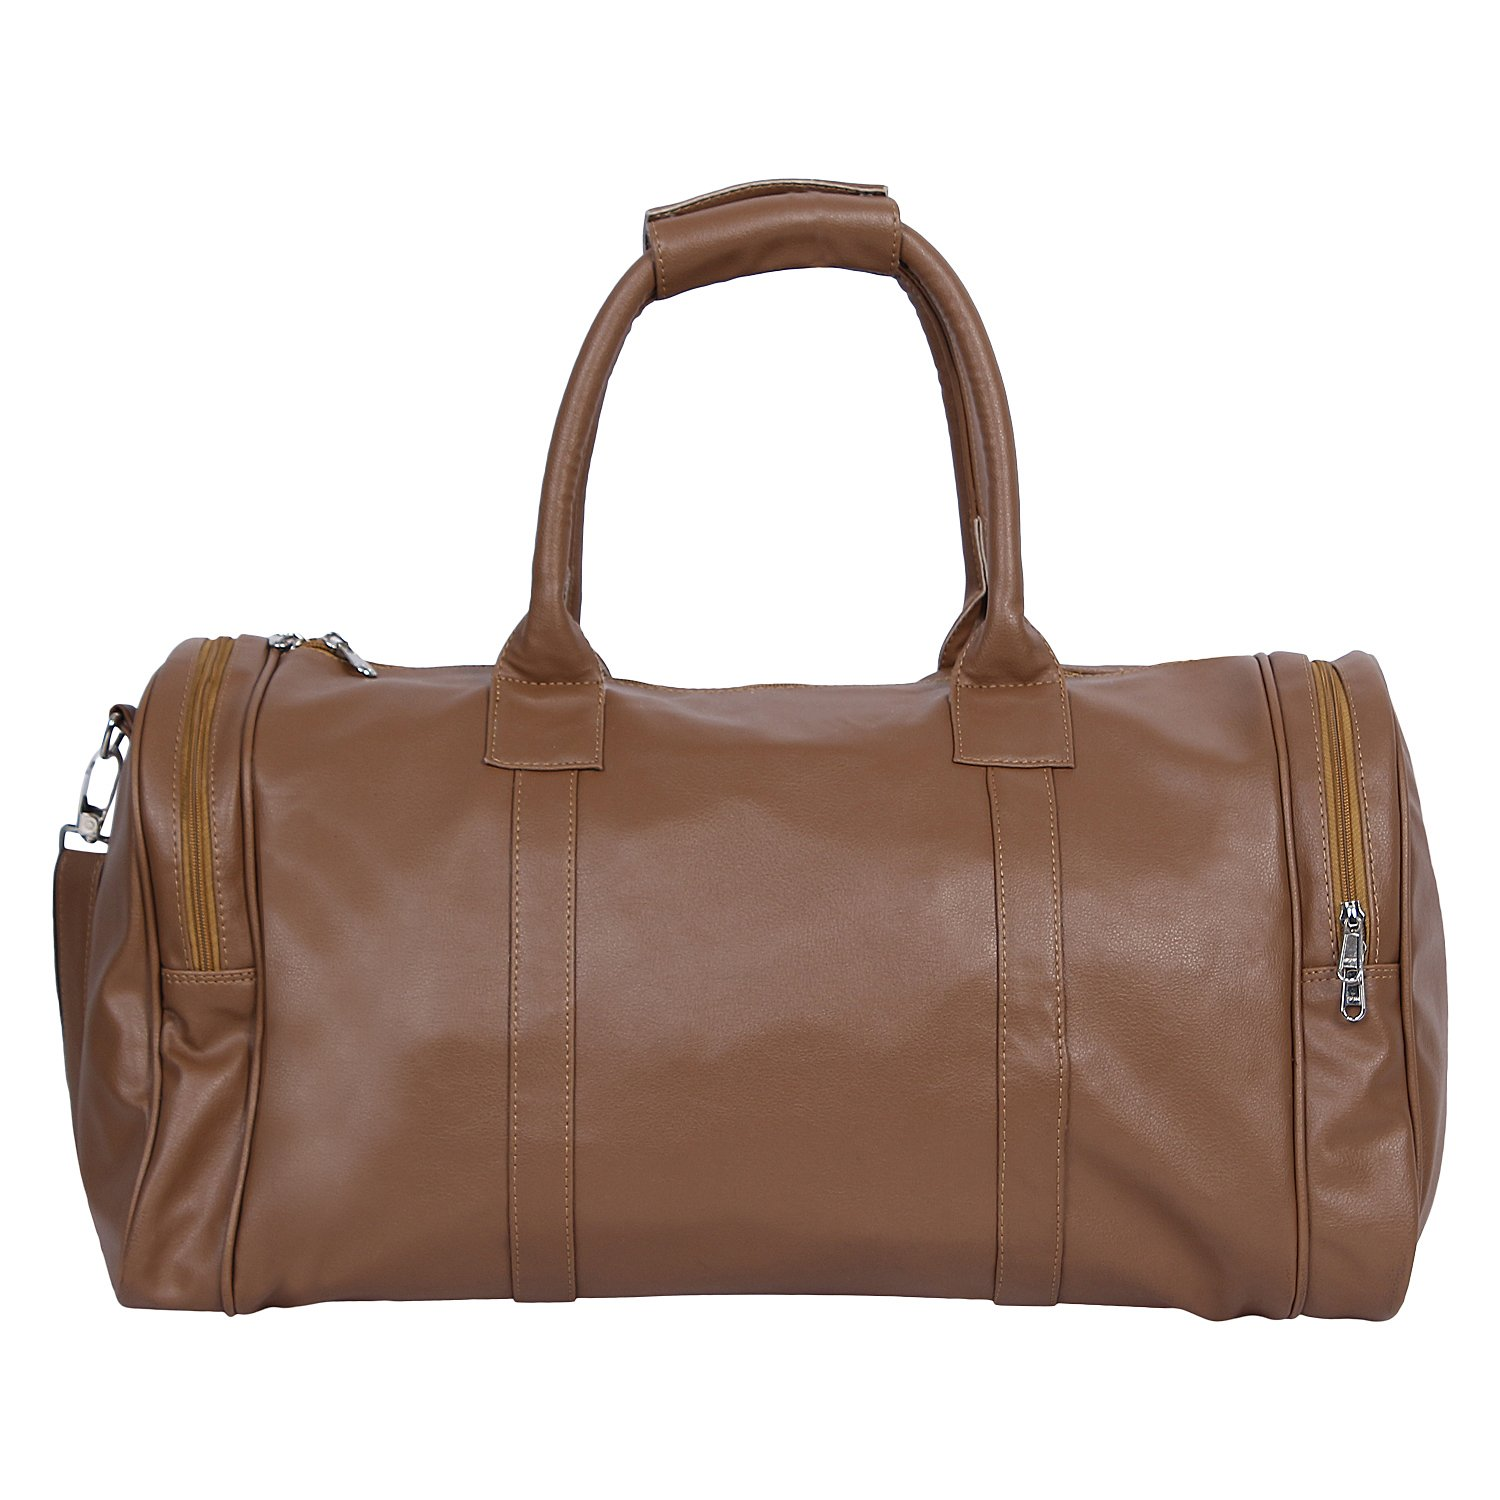 Mboss Leather 57.99 cms Beige Travel Duffle (TB 011)  Amazon.in  Bags 52c2f8042eb56